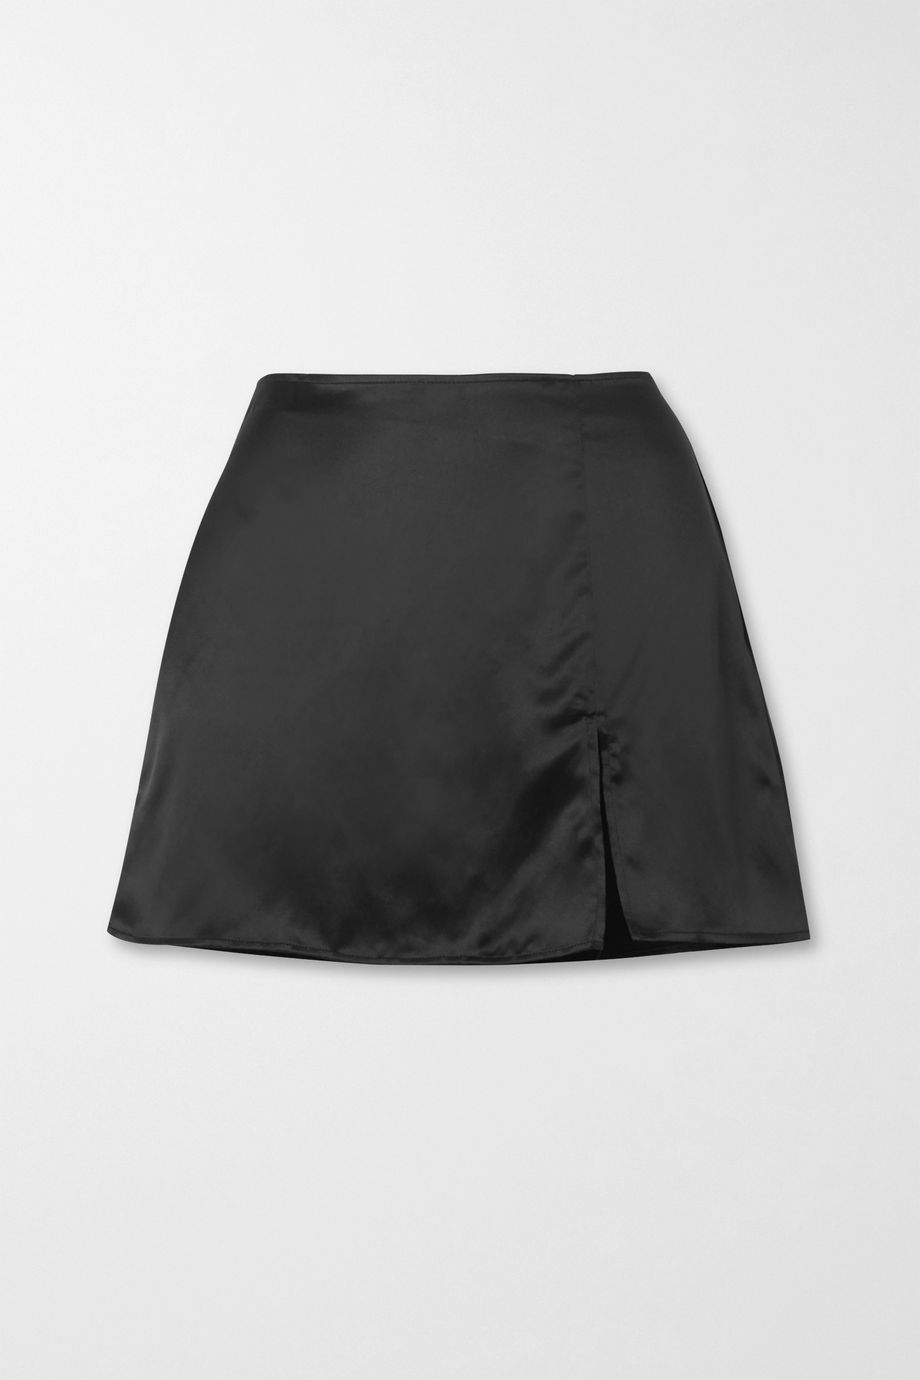 Reformation + NET SUSTAIN Robbie silk-charmeuse mini skirt